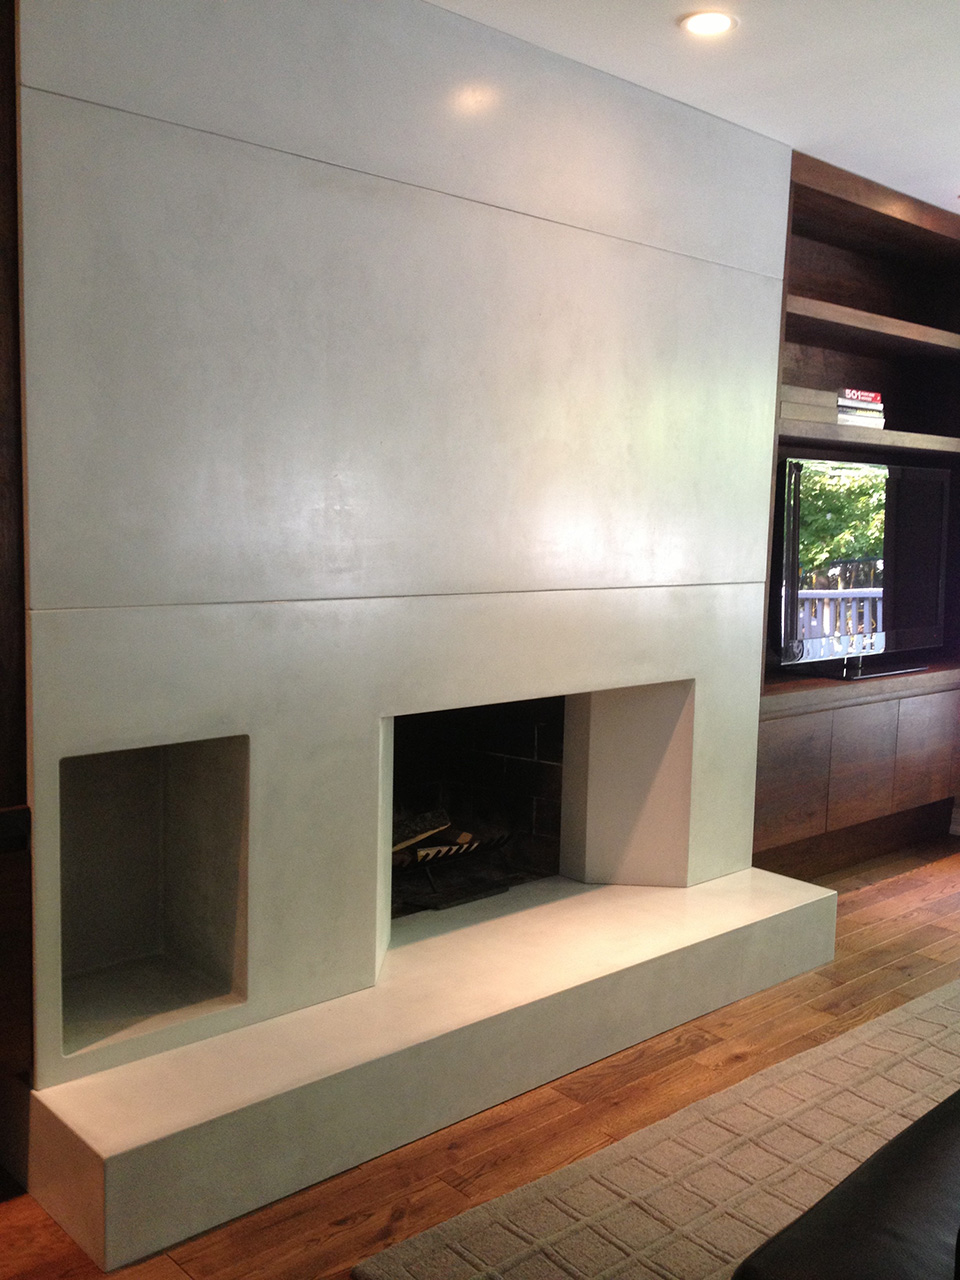 Custom fireplace and built-in cabinetry